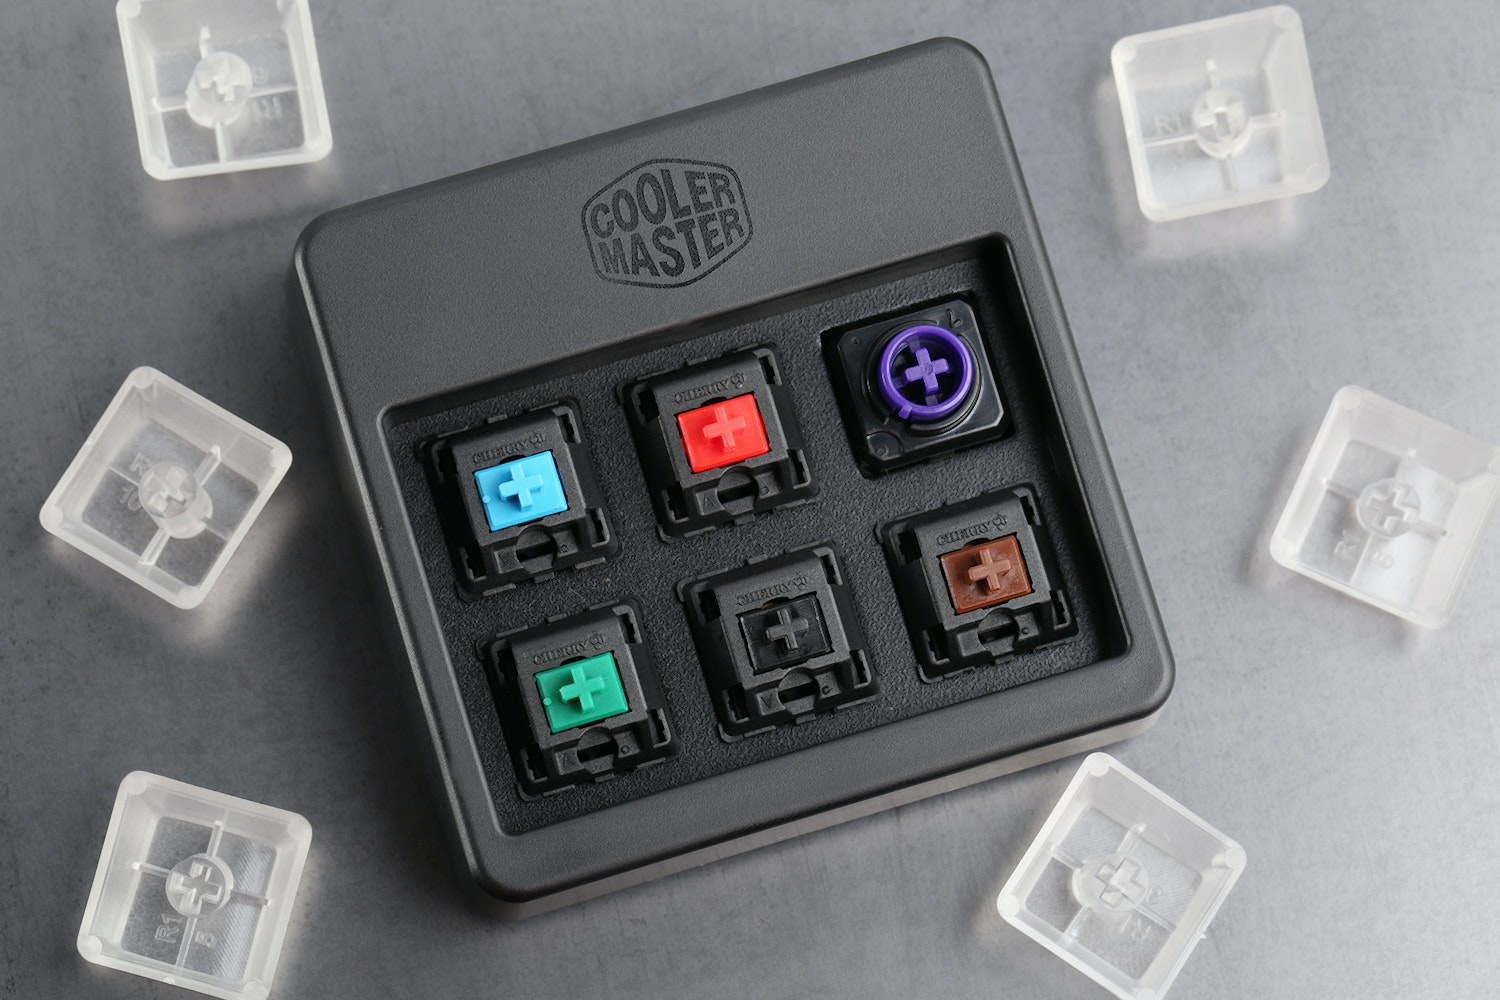 Cooler Master Switch Tester V2